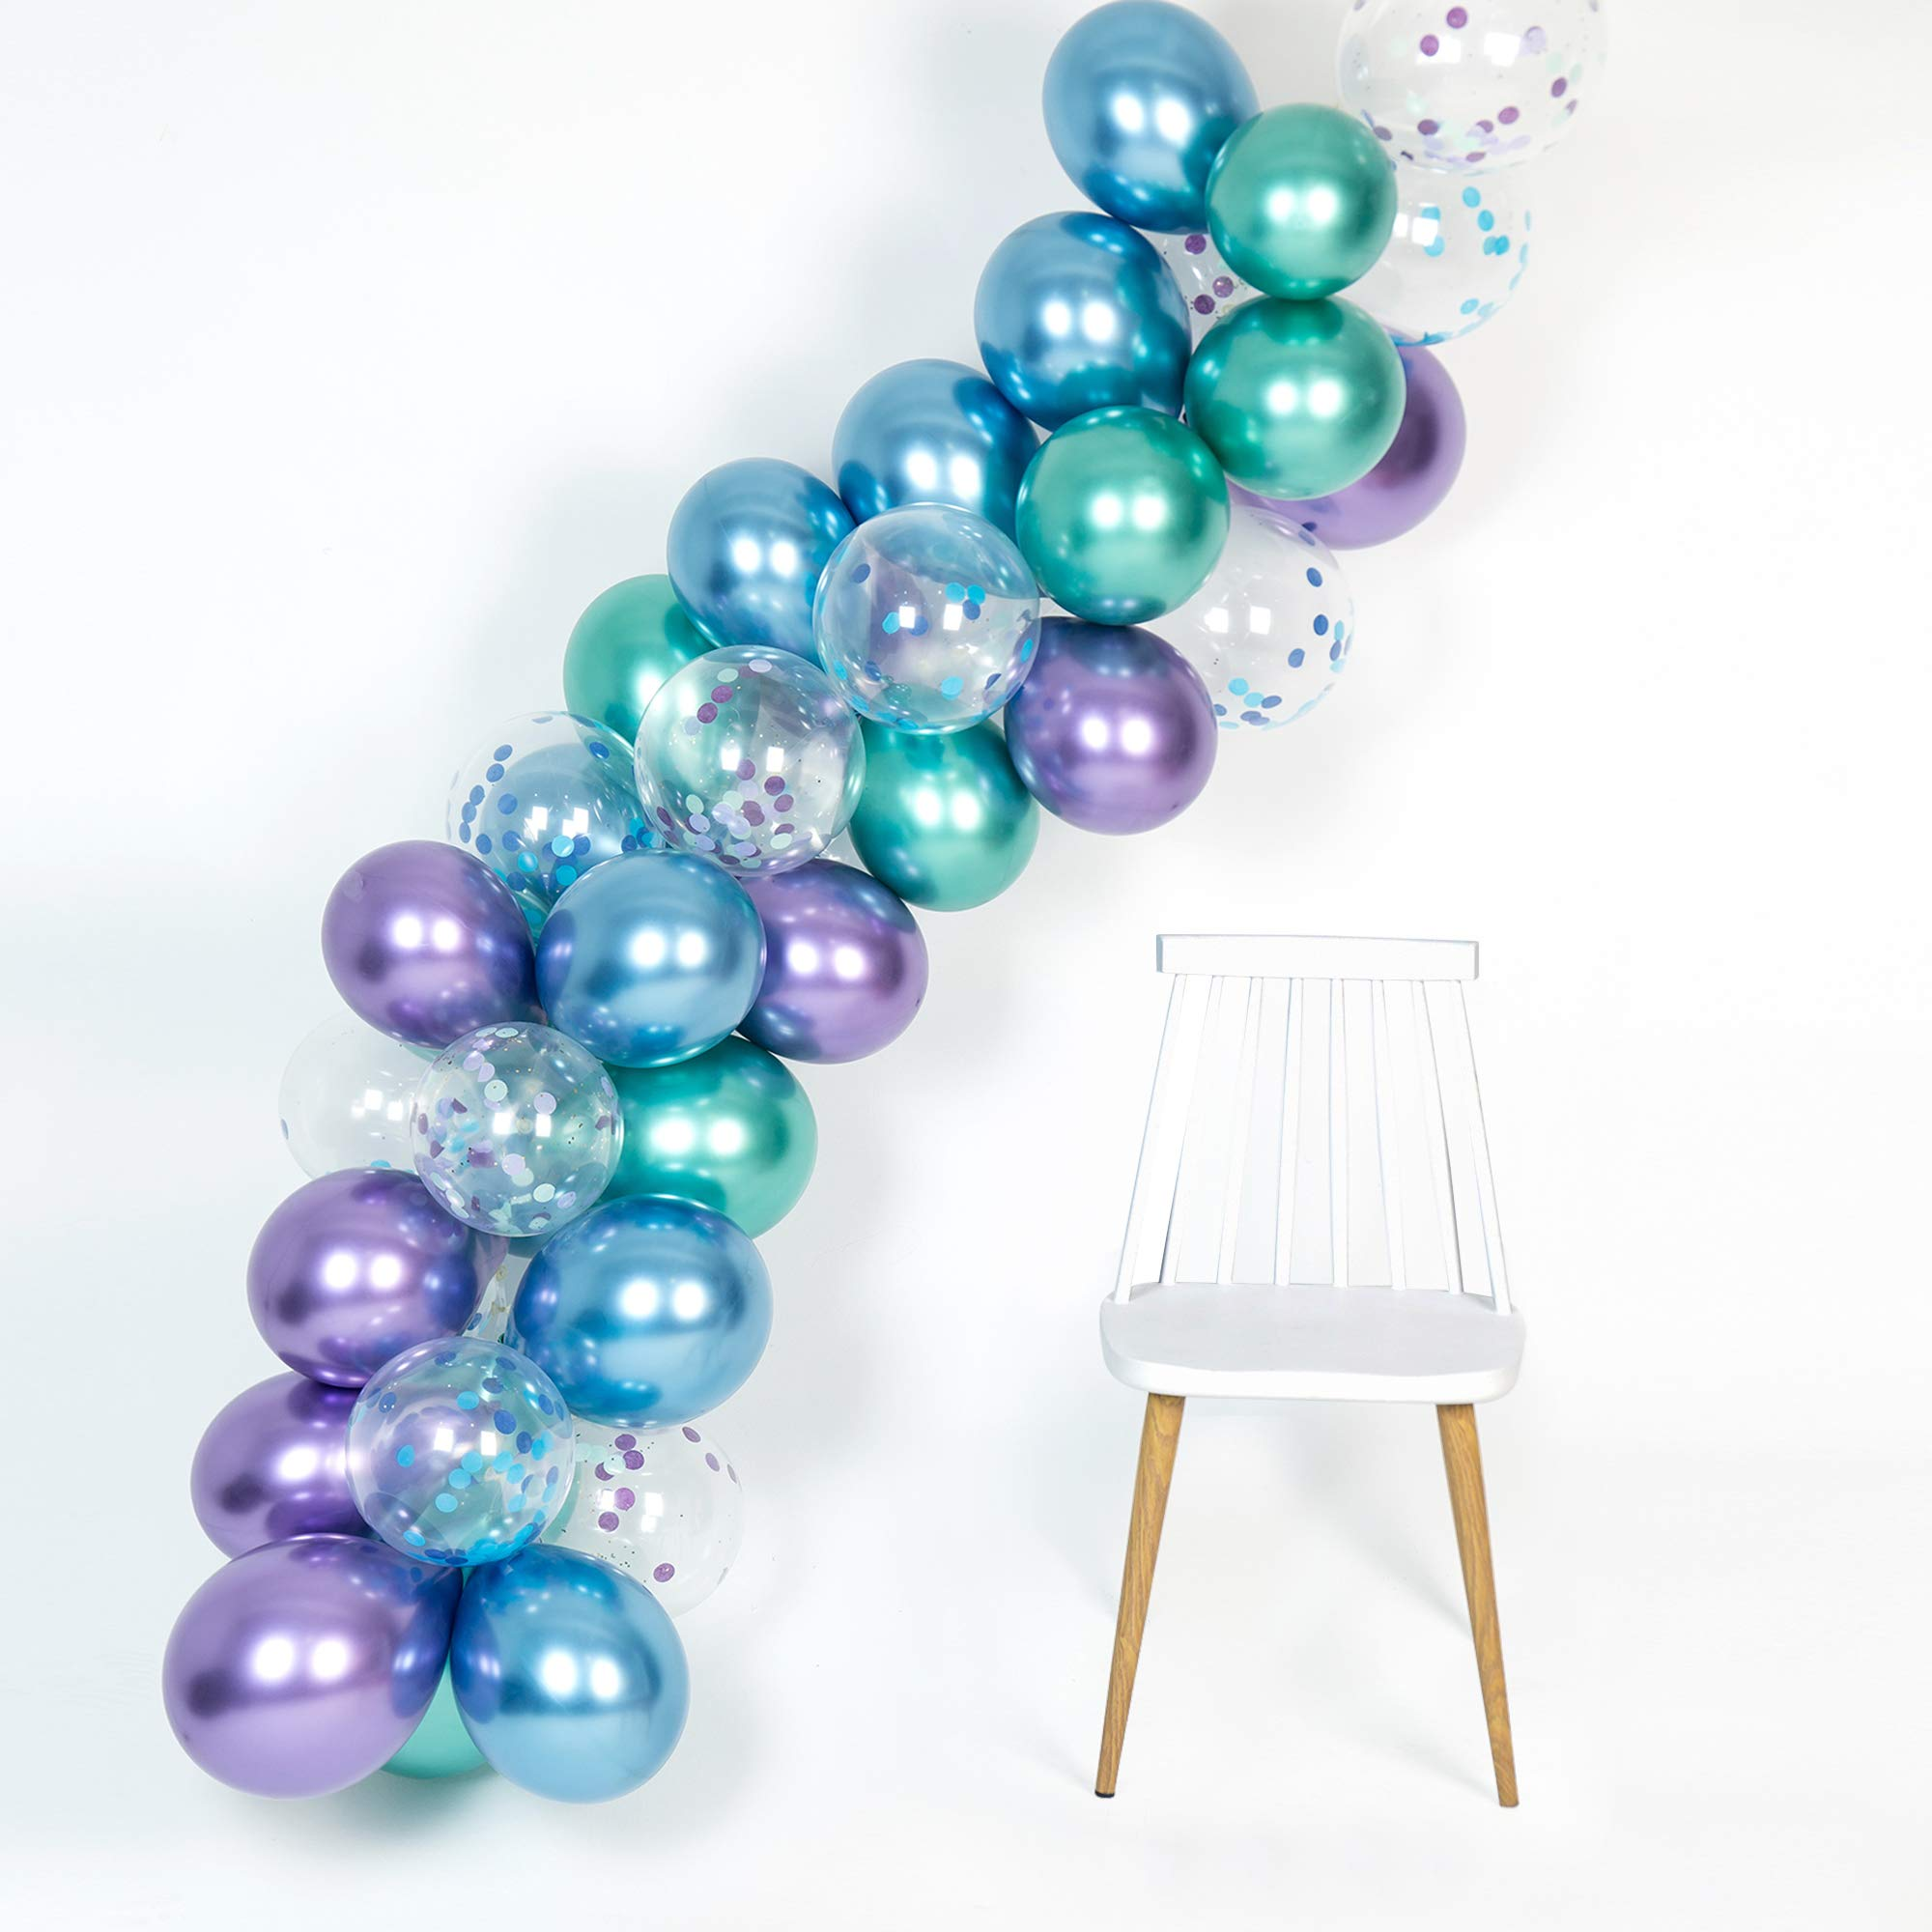 Mermaid Party Supplies Metallic Balloons Arch Kit 50Pcs Thicker Balloon for Birthday Bridal Shower Baby Shower Under The Sea Chrome Blue Confetti Purple Green Color by JMAY